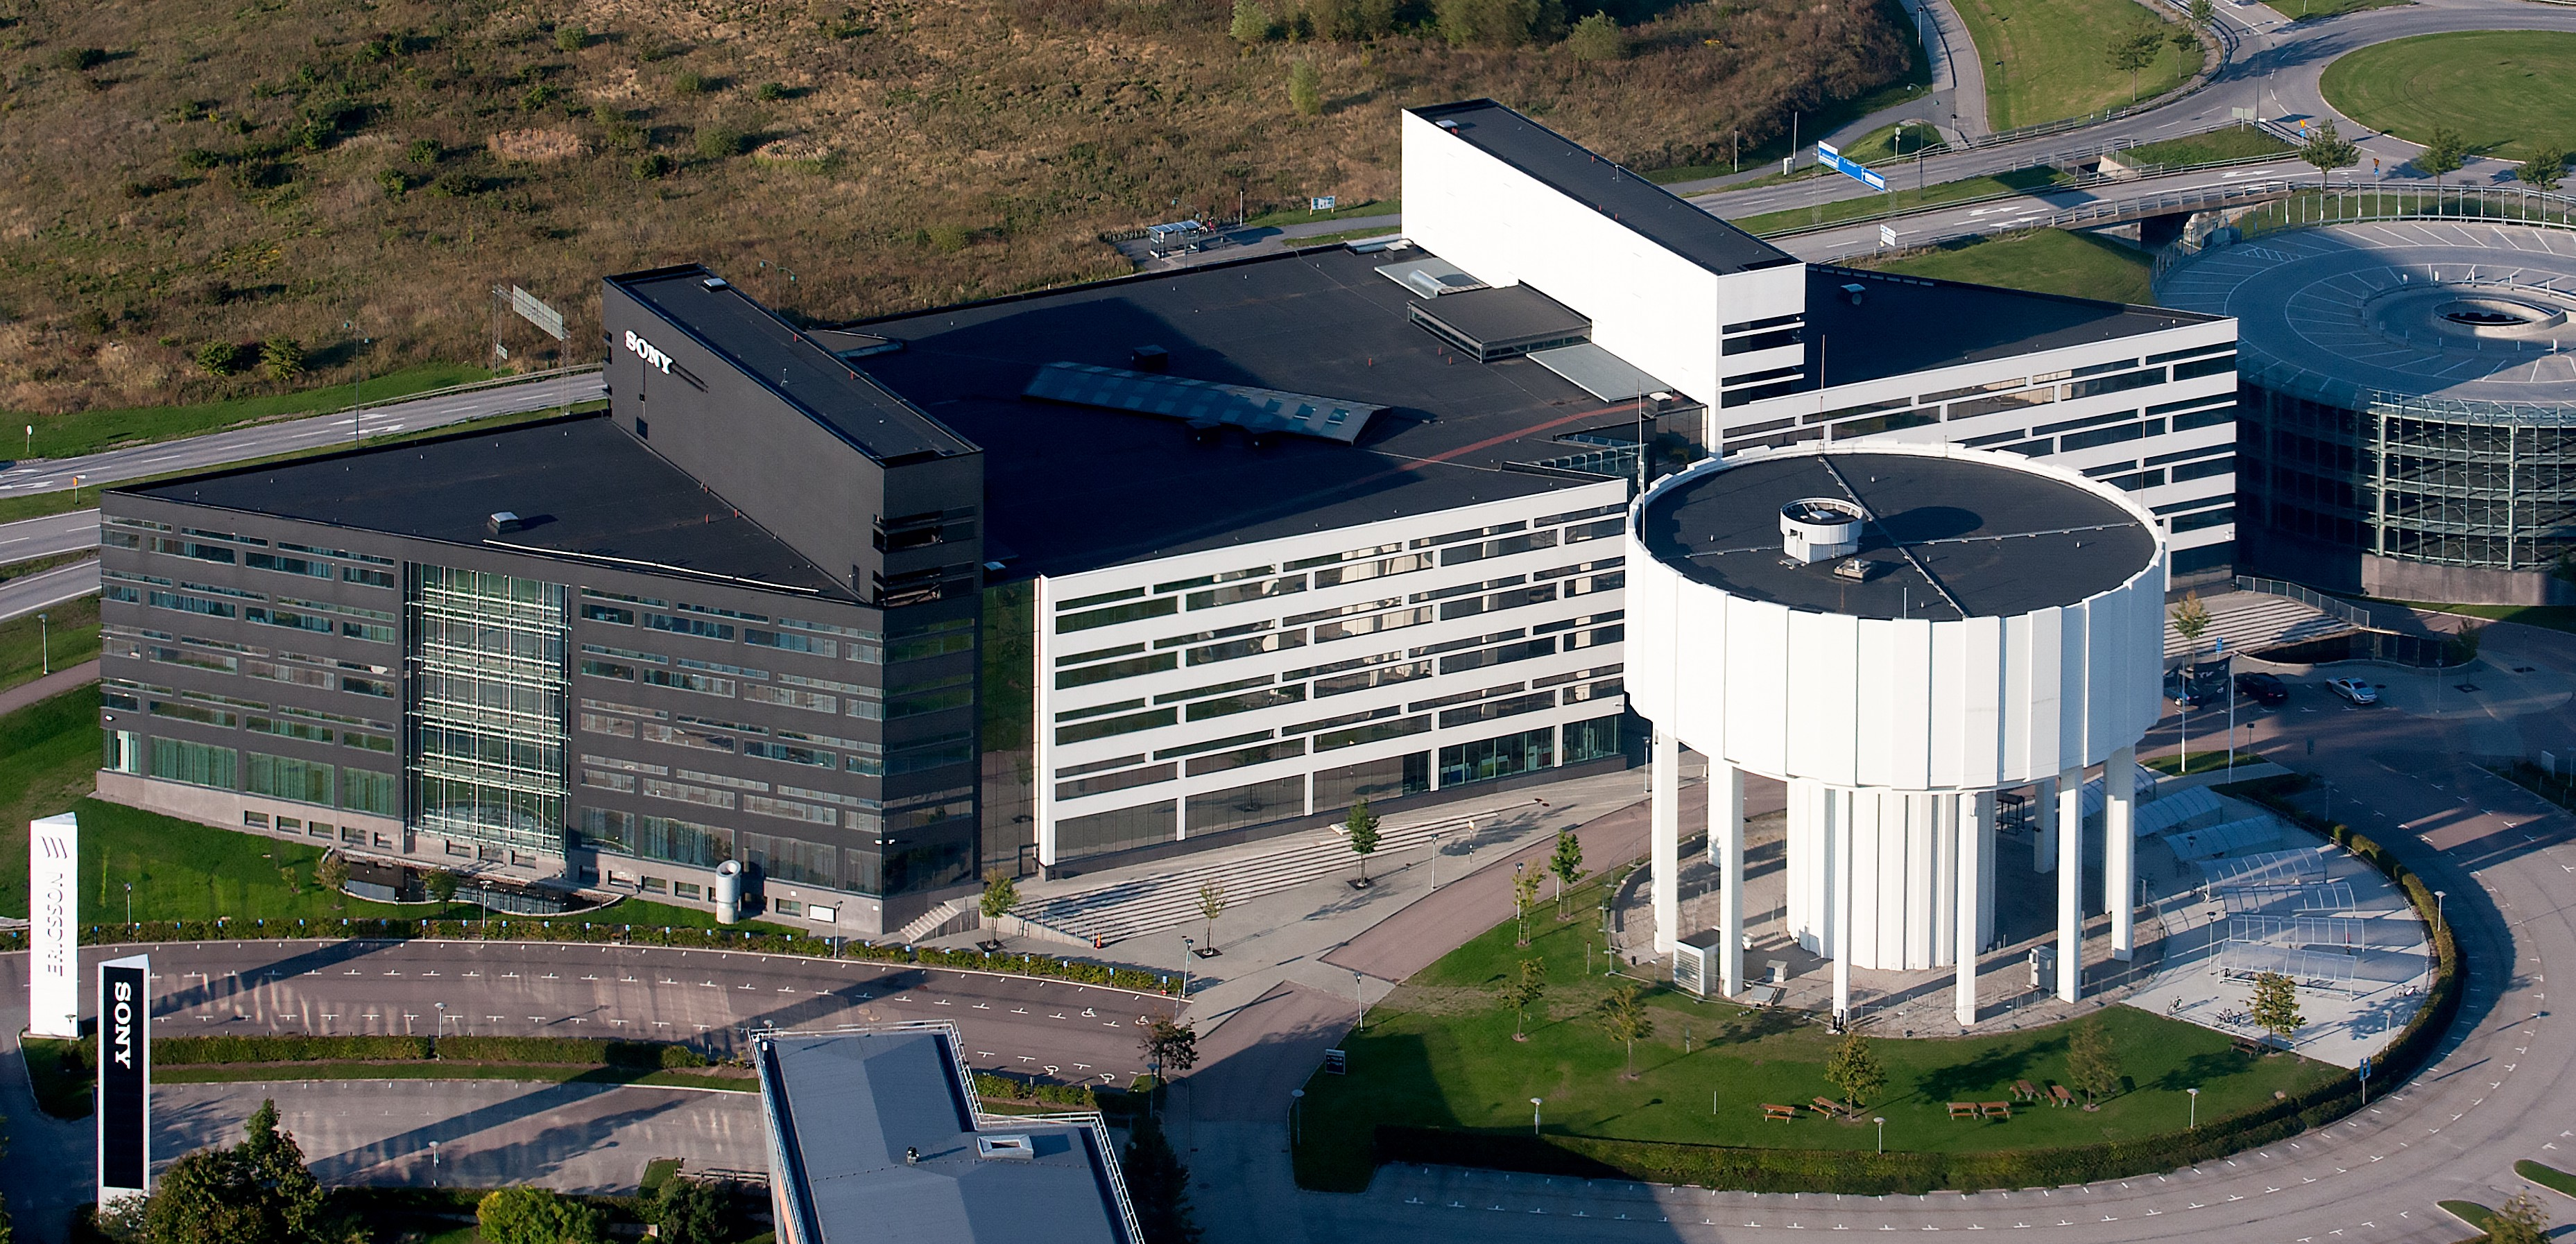 Layoffs likely coming to Sony Mobile HQ in Lund, Sweden